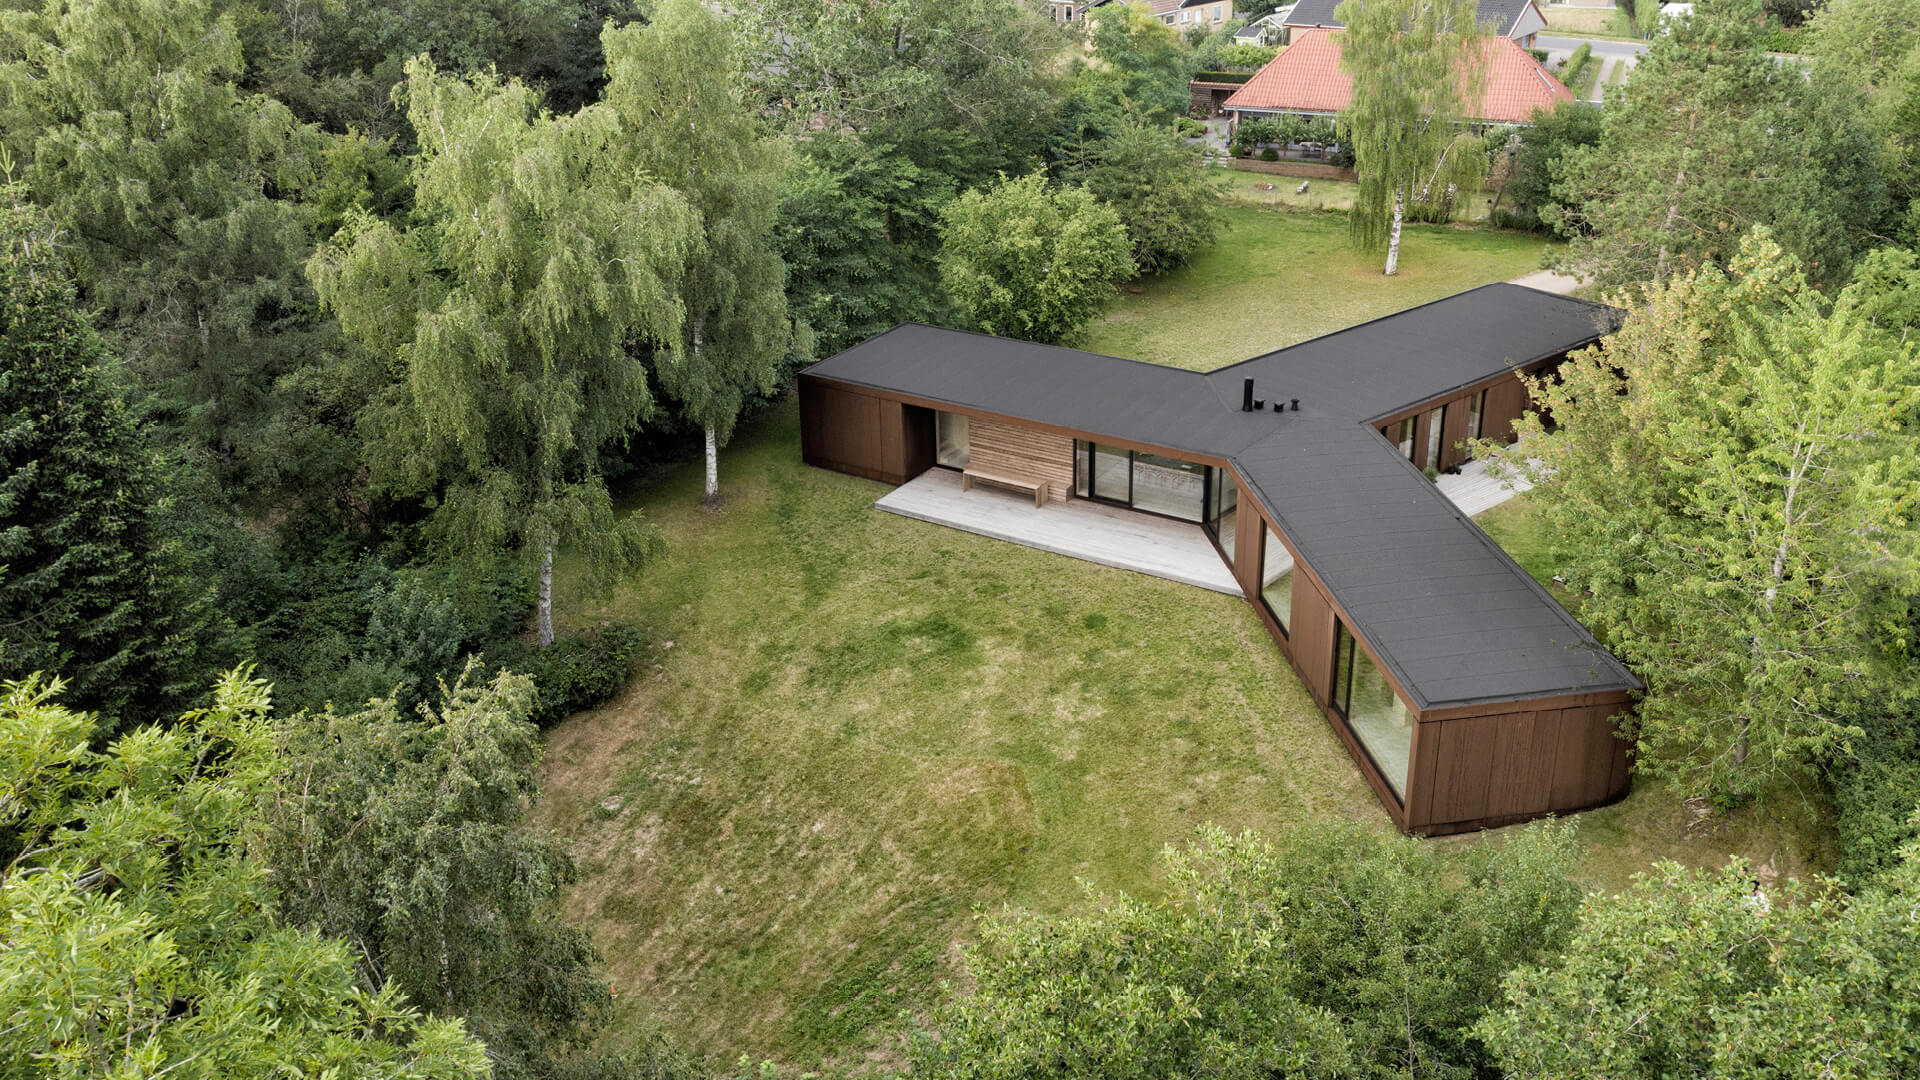 Villa Korup designed by Jan Henrik Jansen Arkitekter with Marshall Blecher, in Fyn island, Denmark | Villa Korup designed by Jan Henrik Jansen Arkitekter with Marshall Blecher | STIRworld